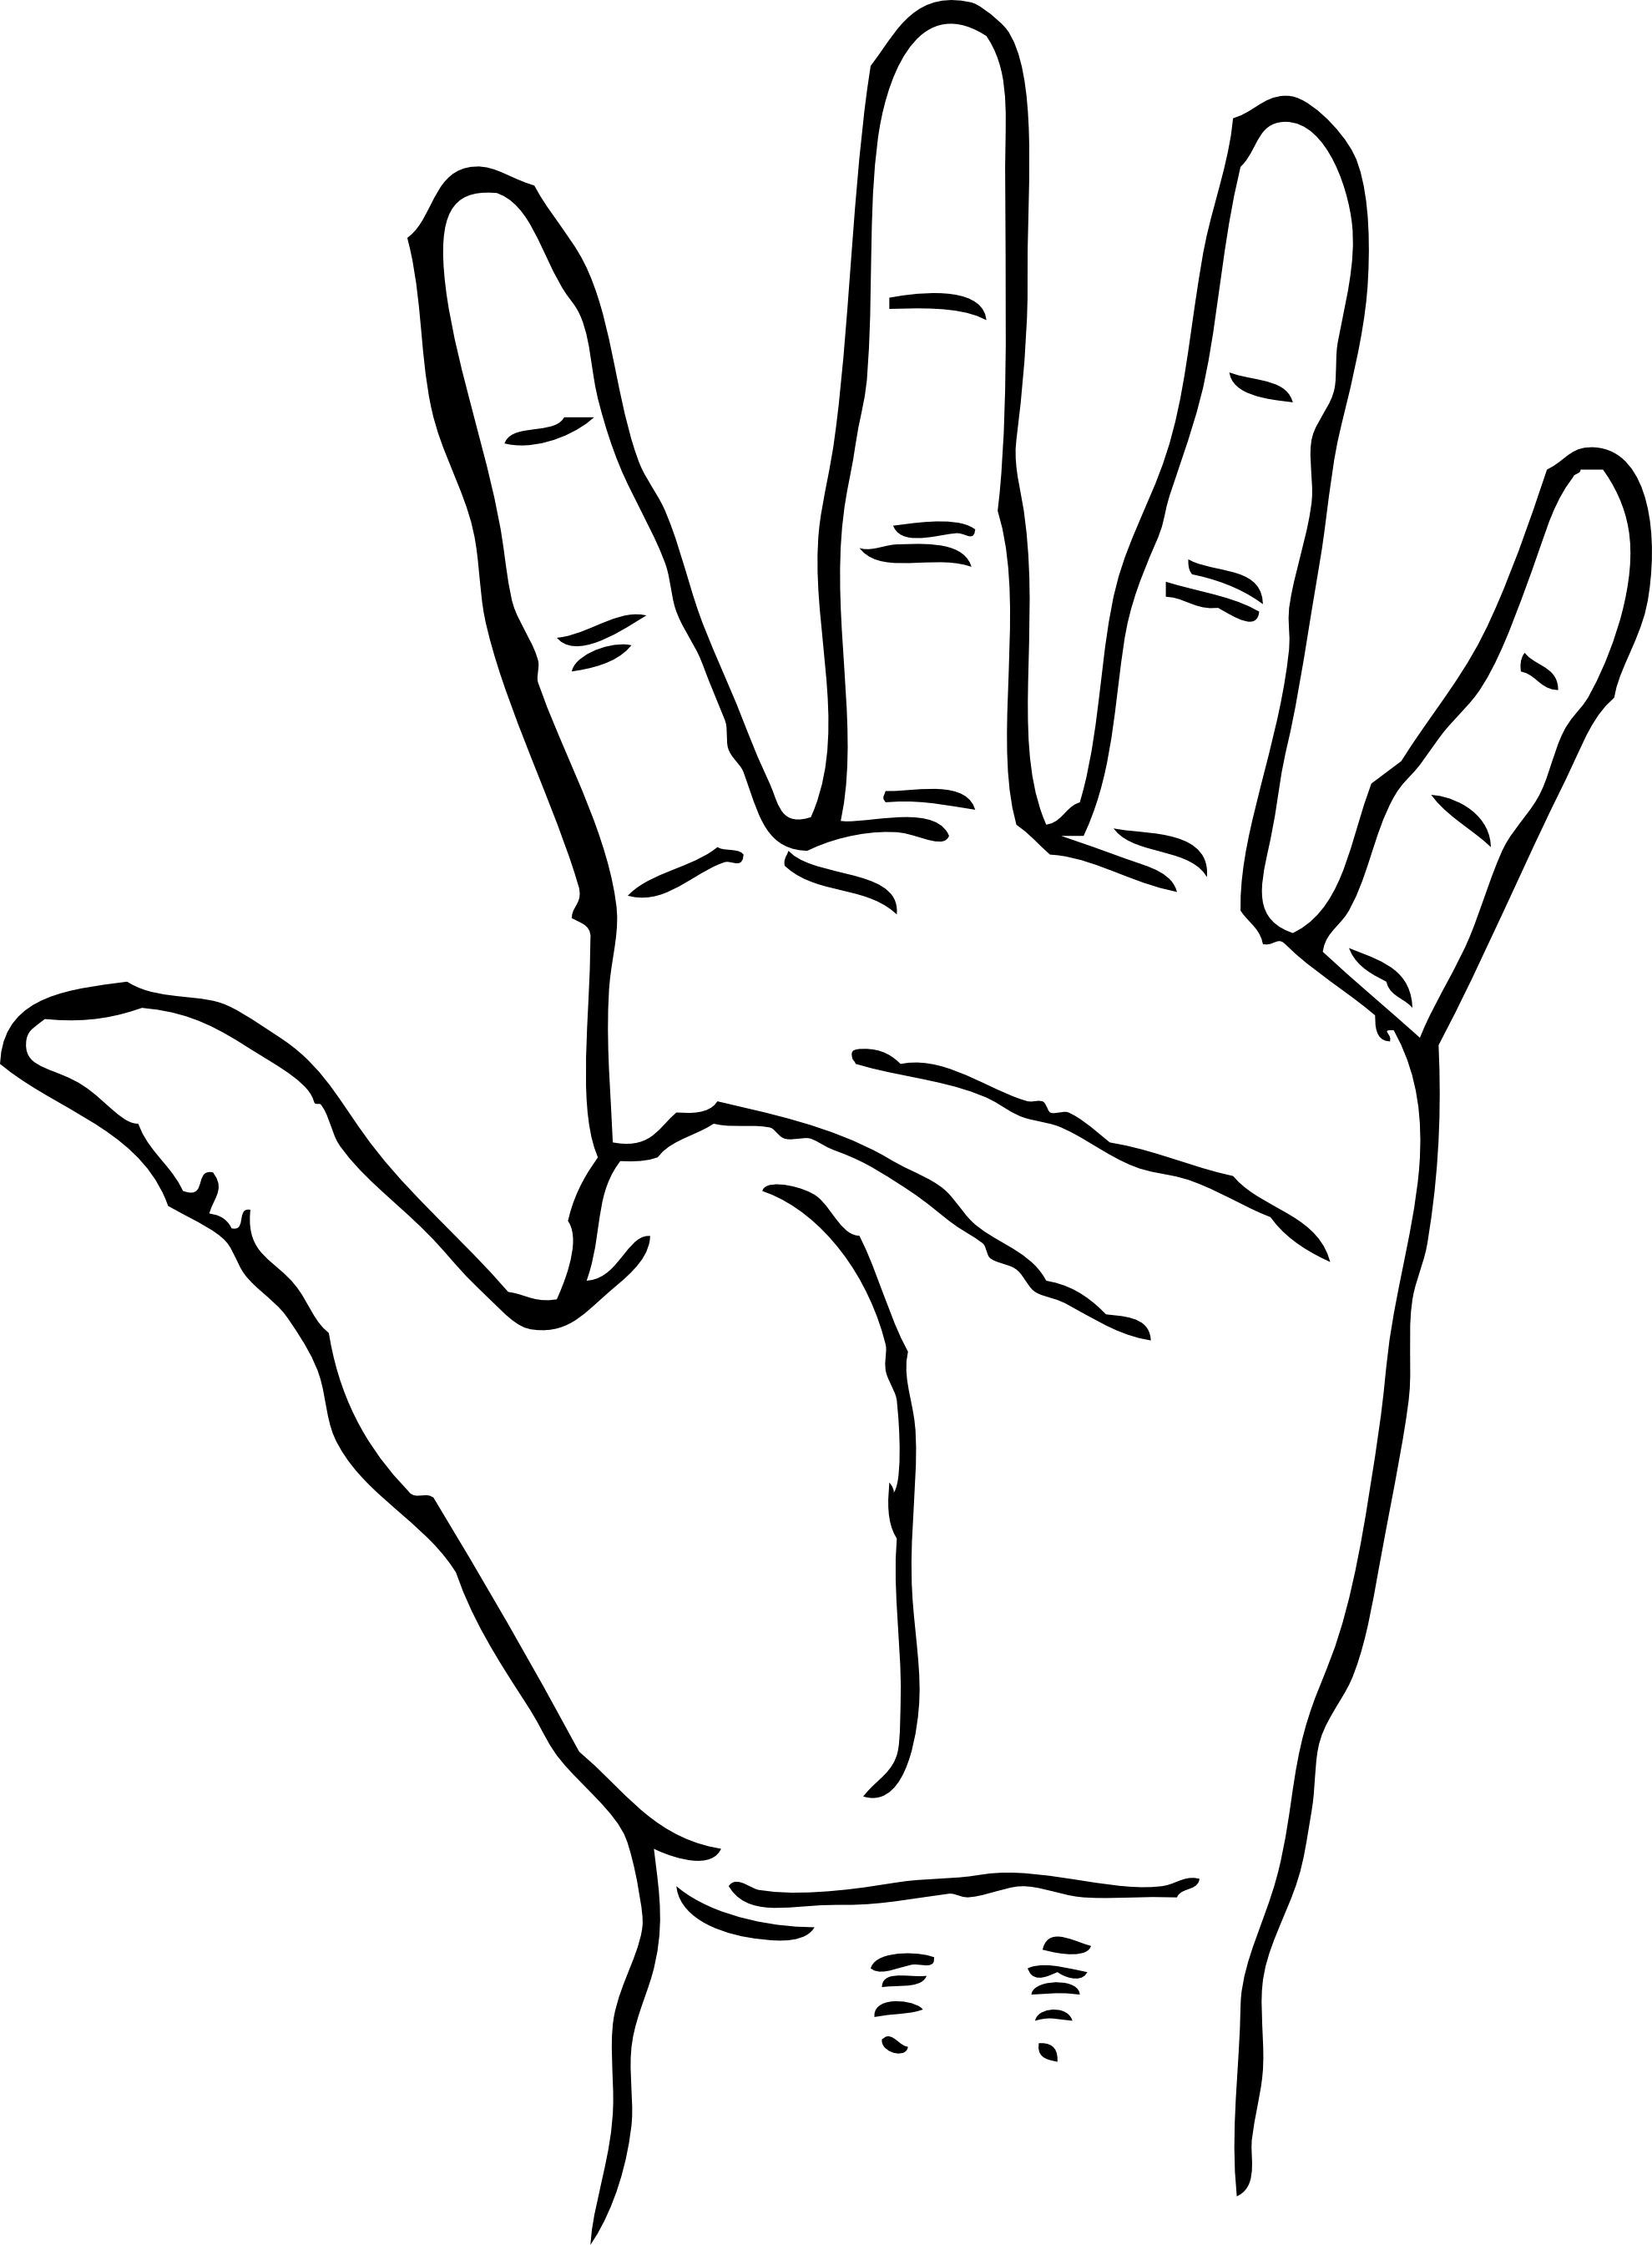 Black And White Clipart Hand.